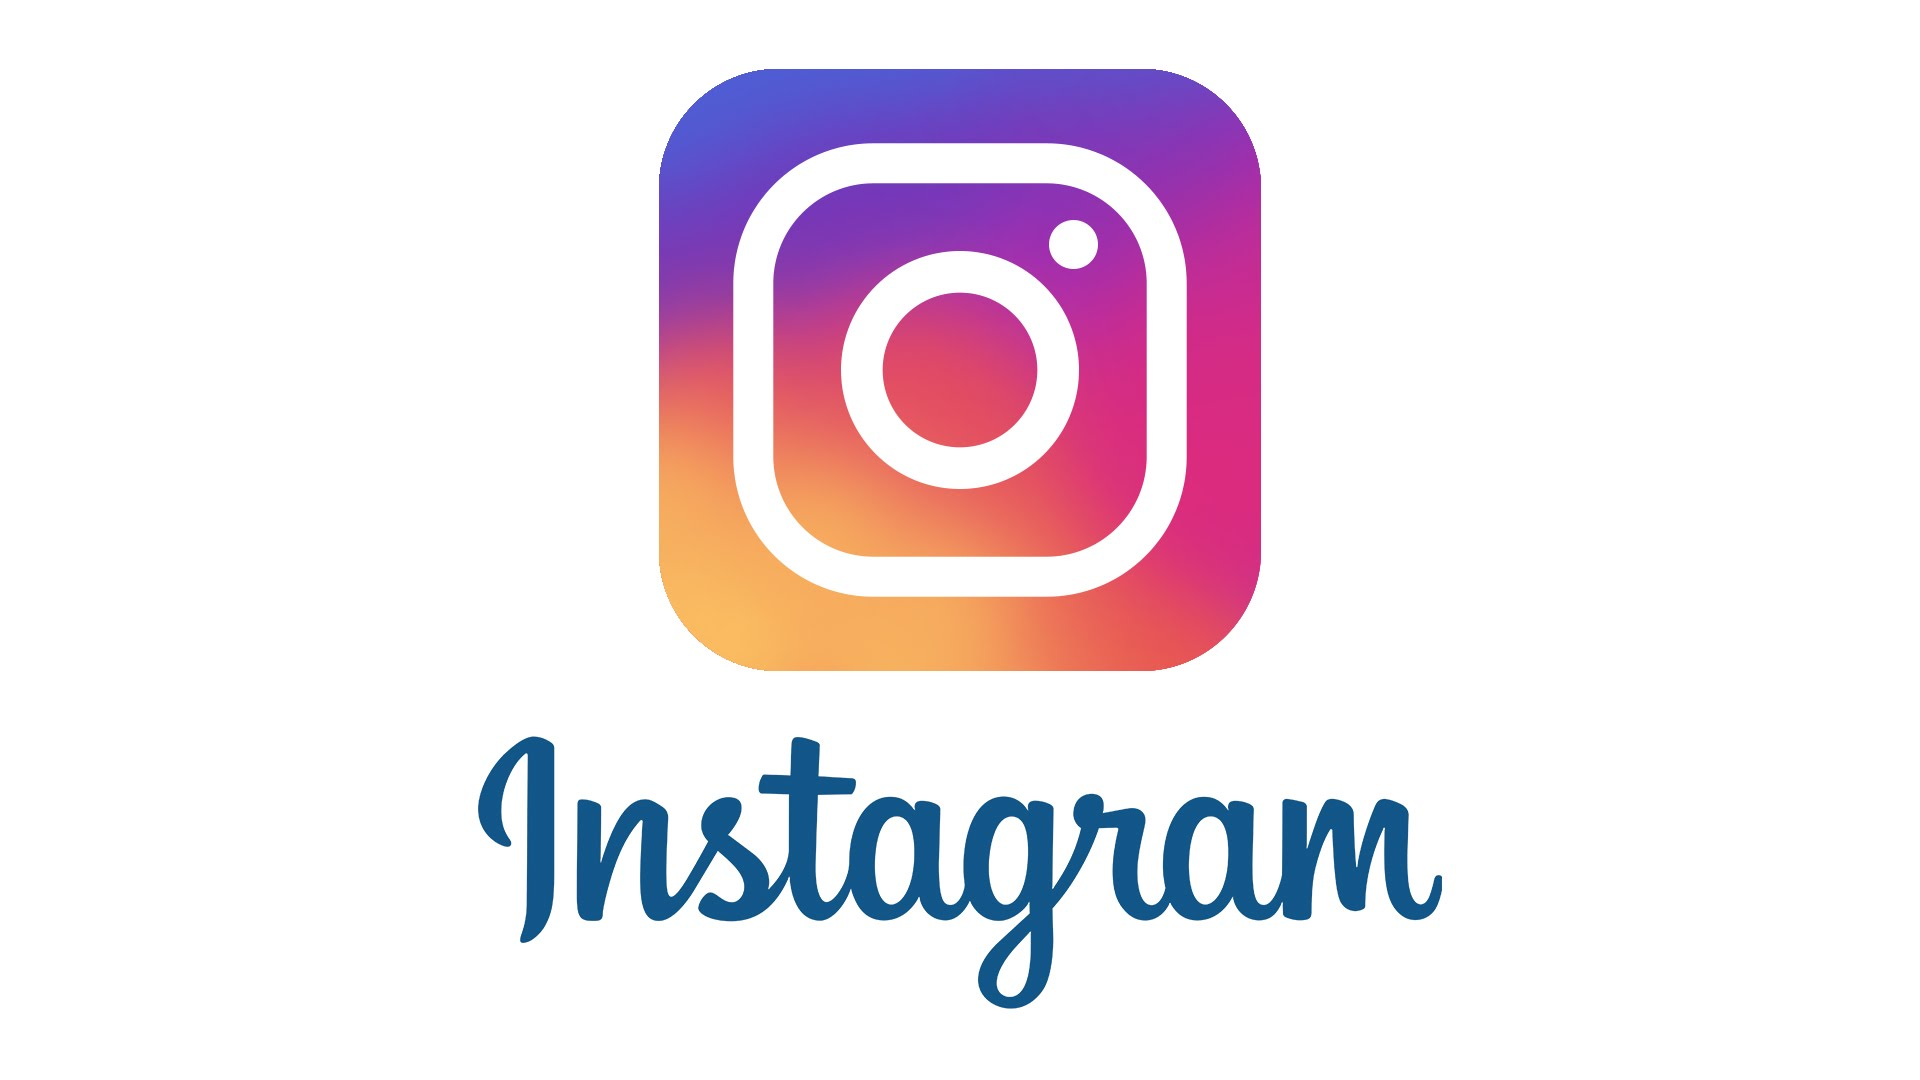 give you 2.000 Instagram followers,3.000 likes, 3.000 video views and 10 comments